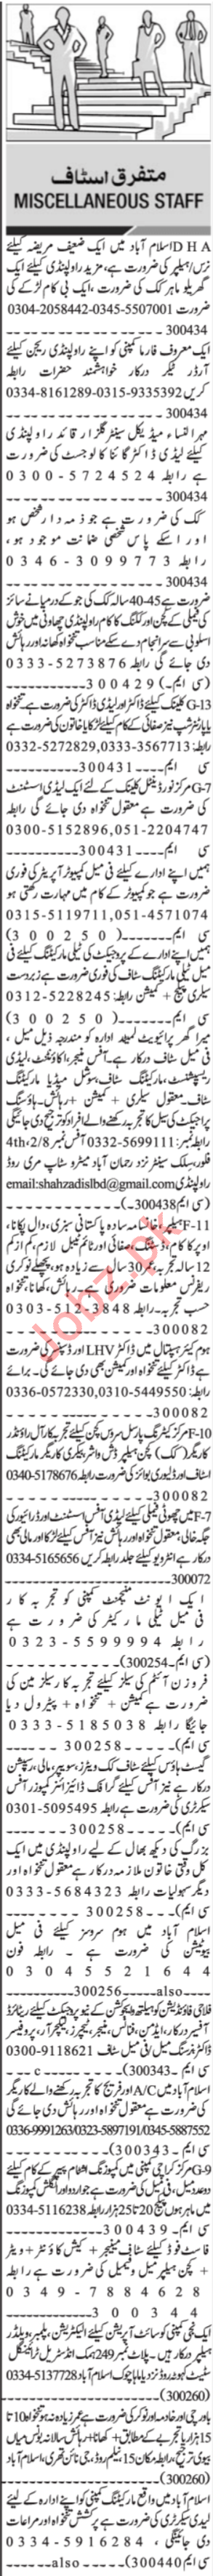 Jang Sunday Classified Ads 23rd June 2019 for General Staff